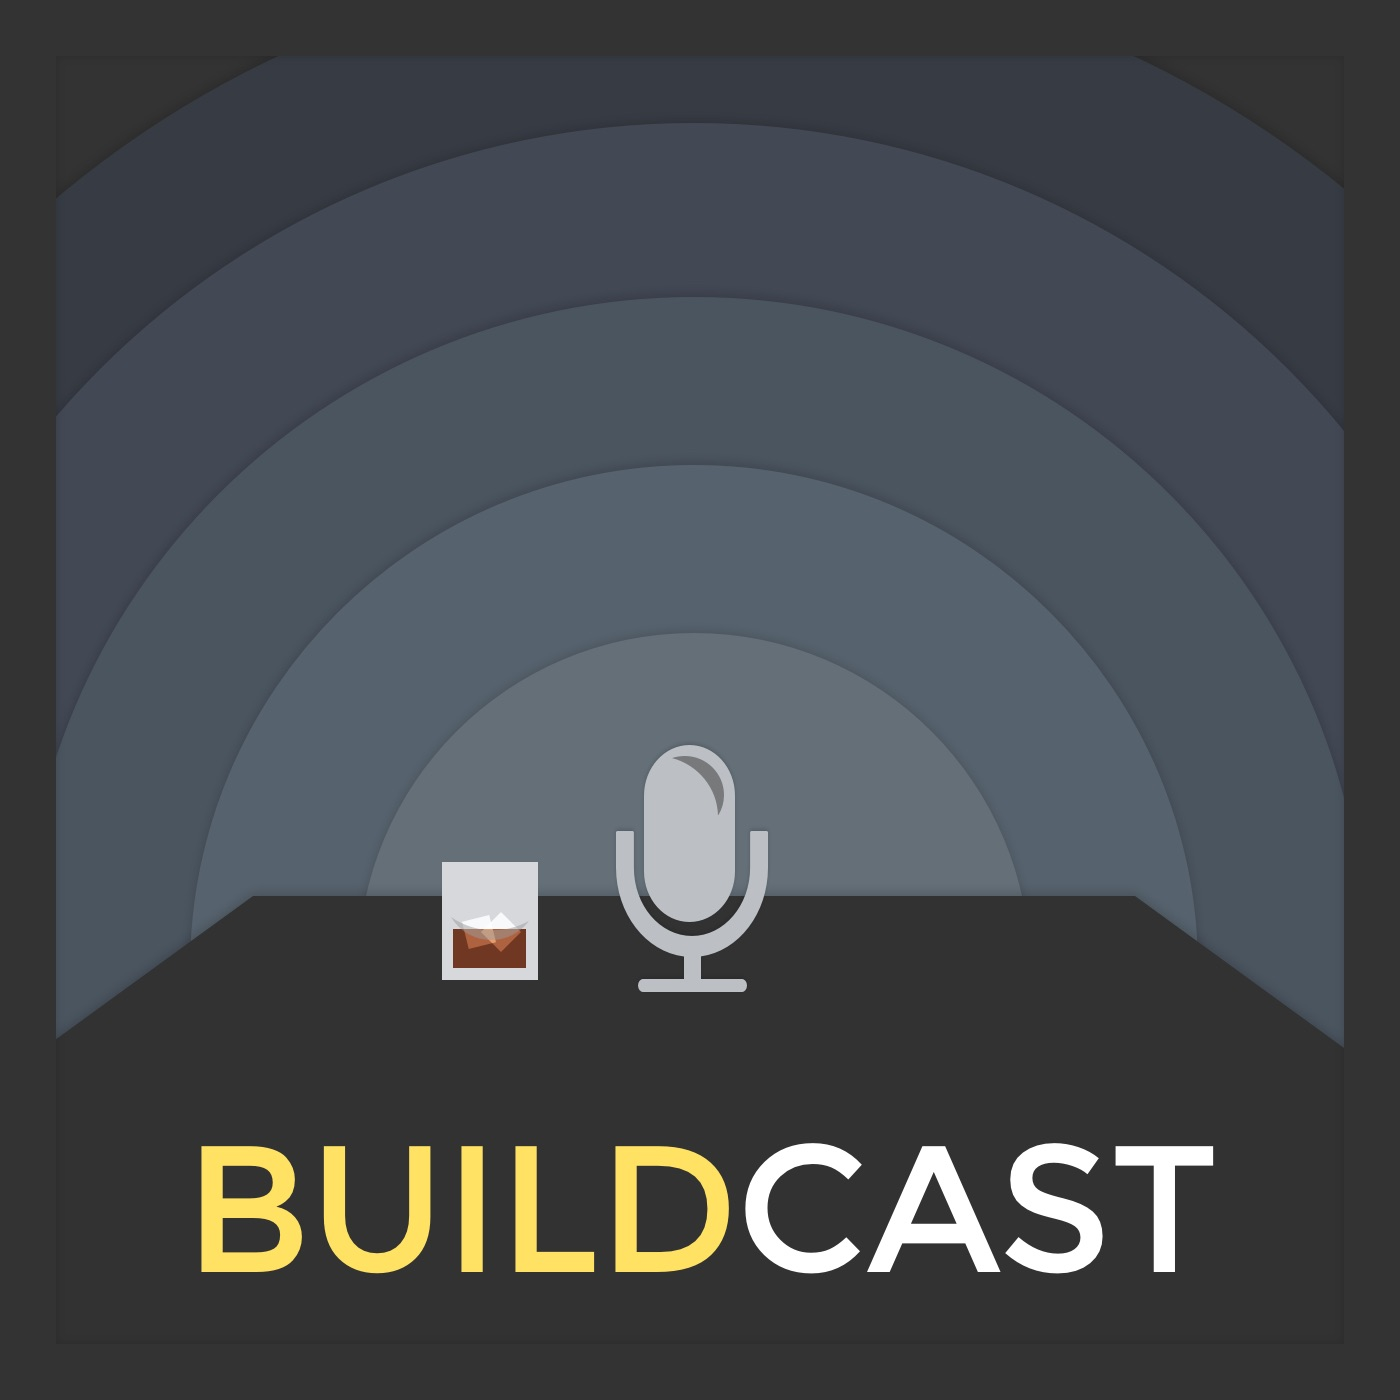 Buildcast Podcast